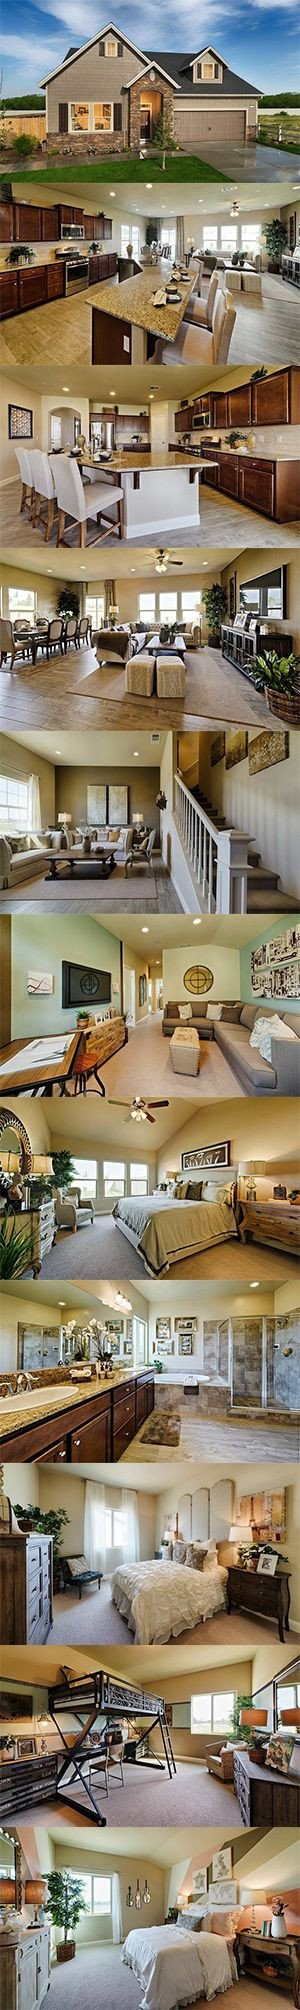 Comfortable Living Room Kitchen New Best 20 fortable Living Rooms Ideas On Pinterest